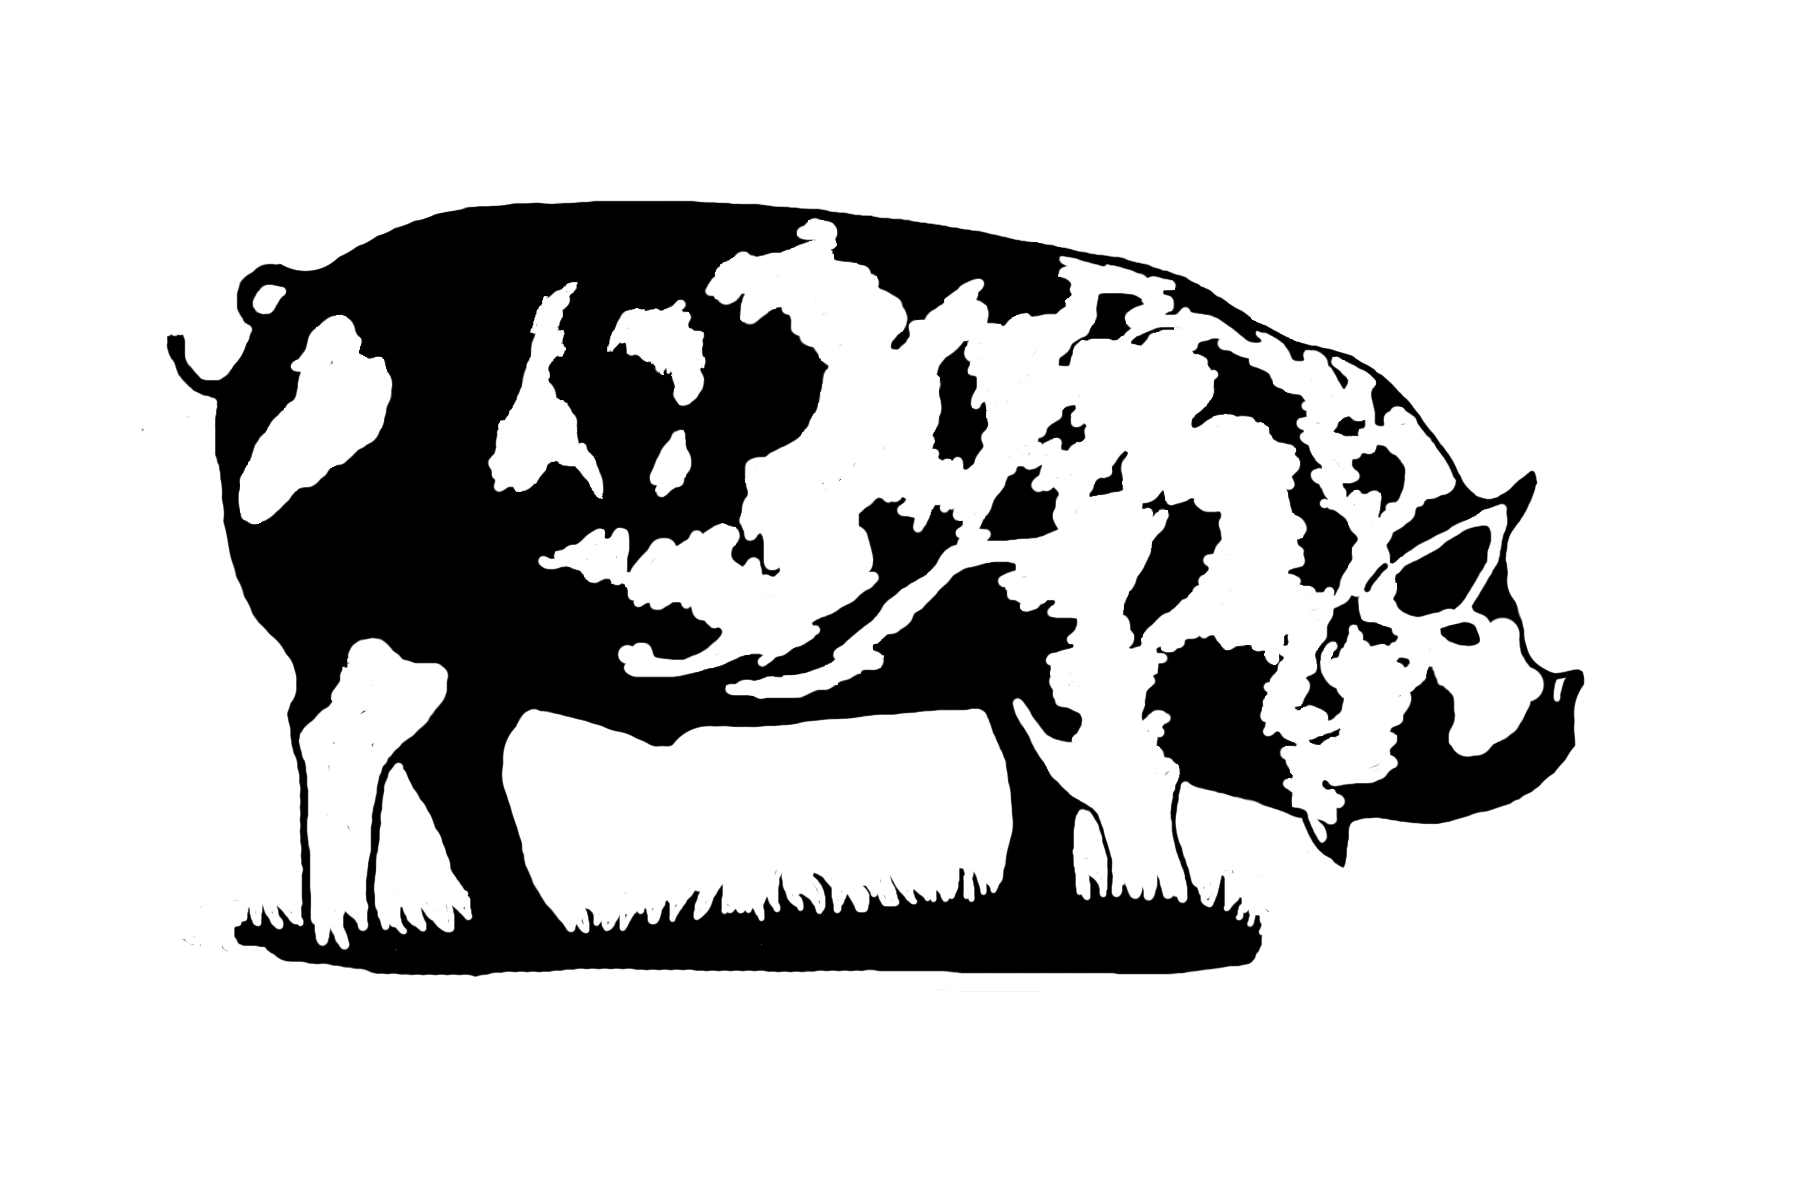 Fence Clipart Pig Fence Pig Transparent Free For Download